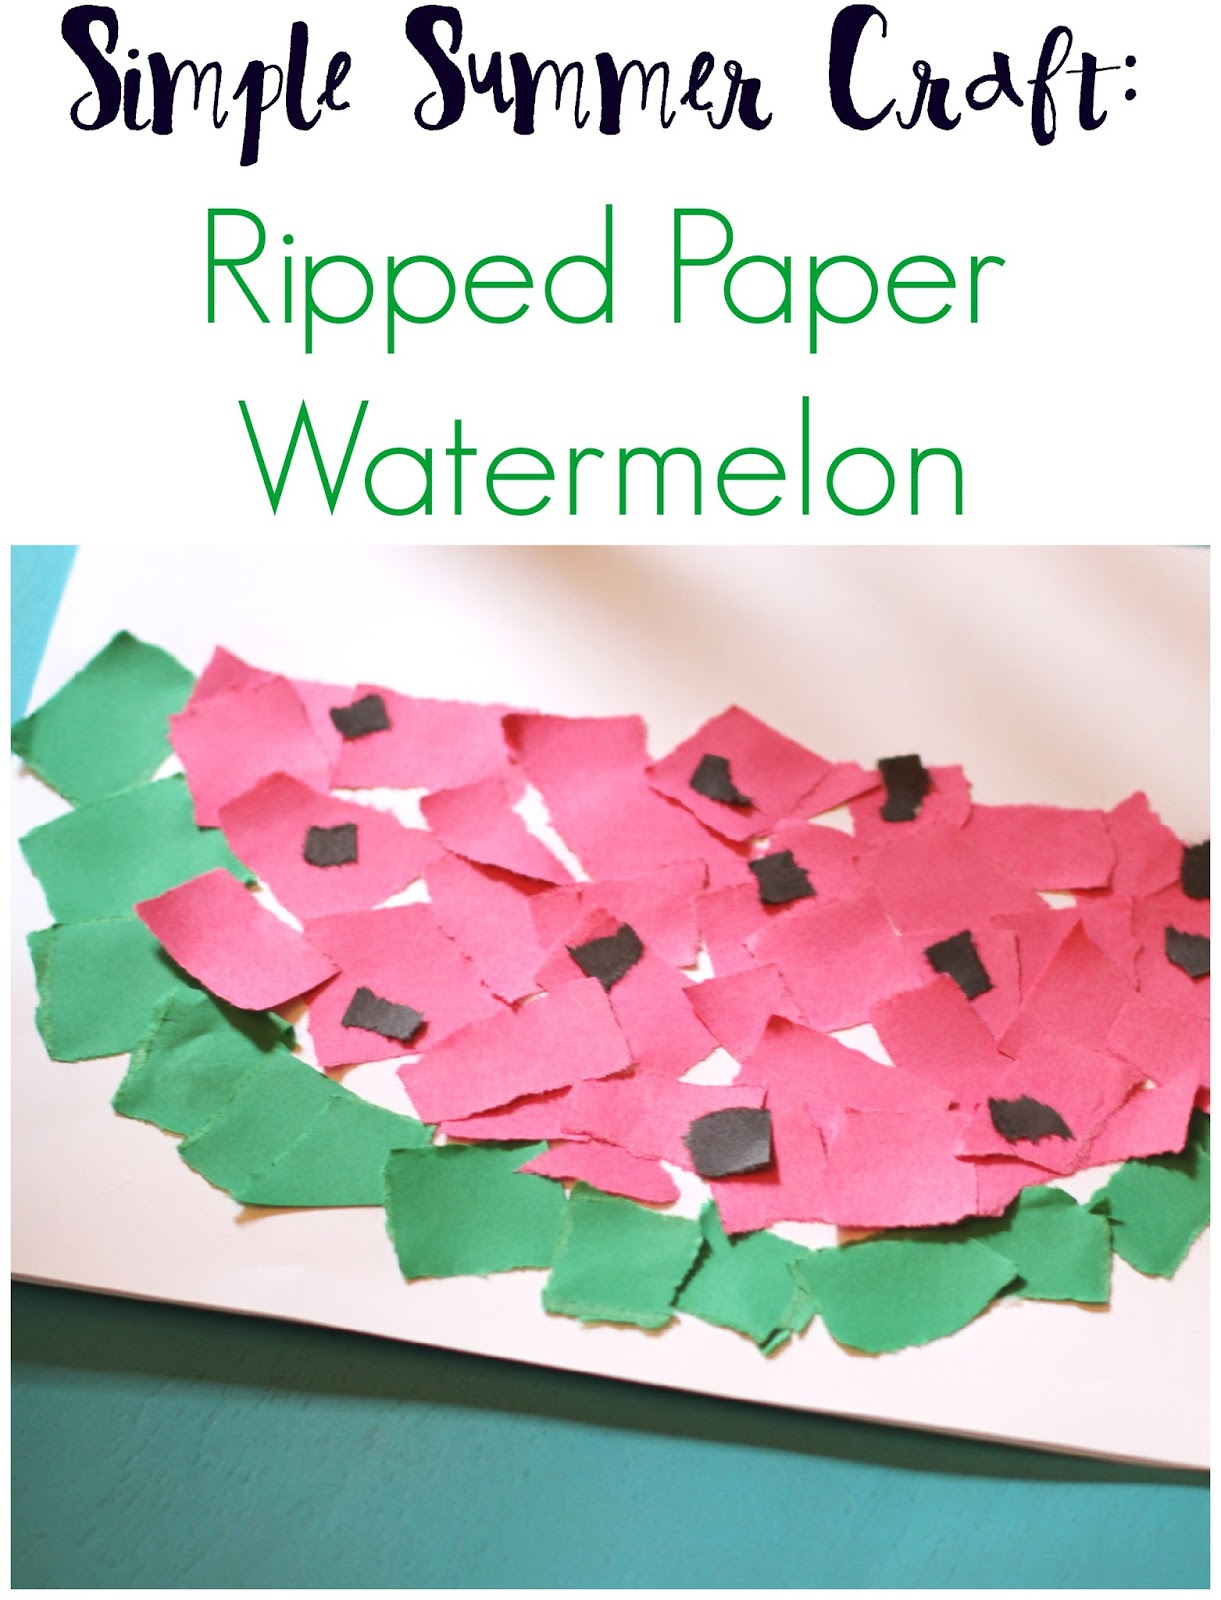 Simple Summer Craft: Ripped Paper Watermelon - The Chirping Moms